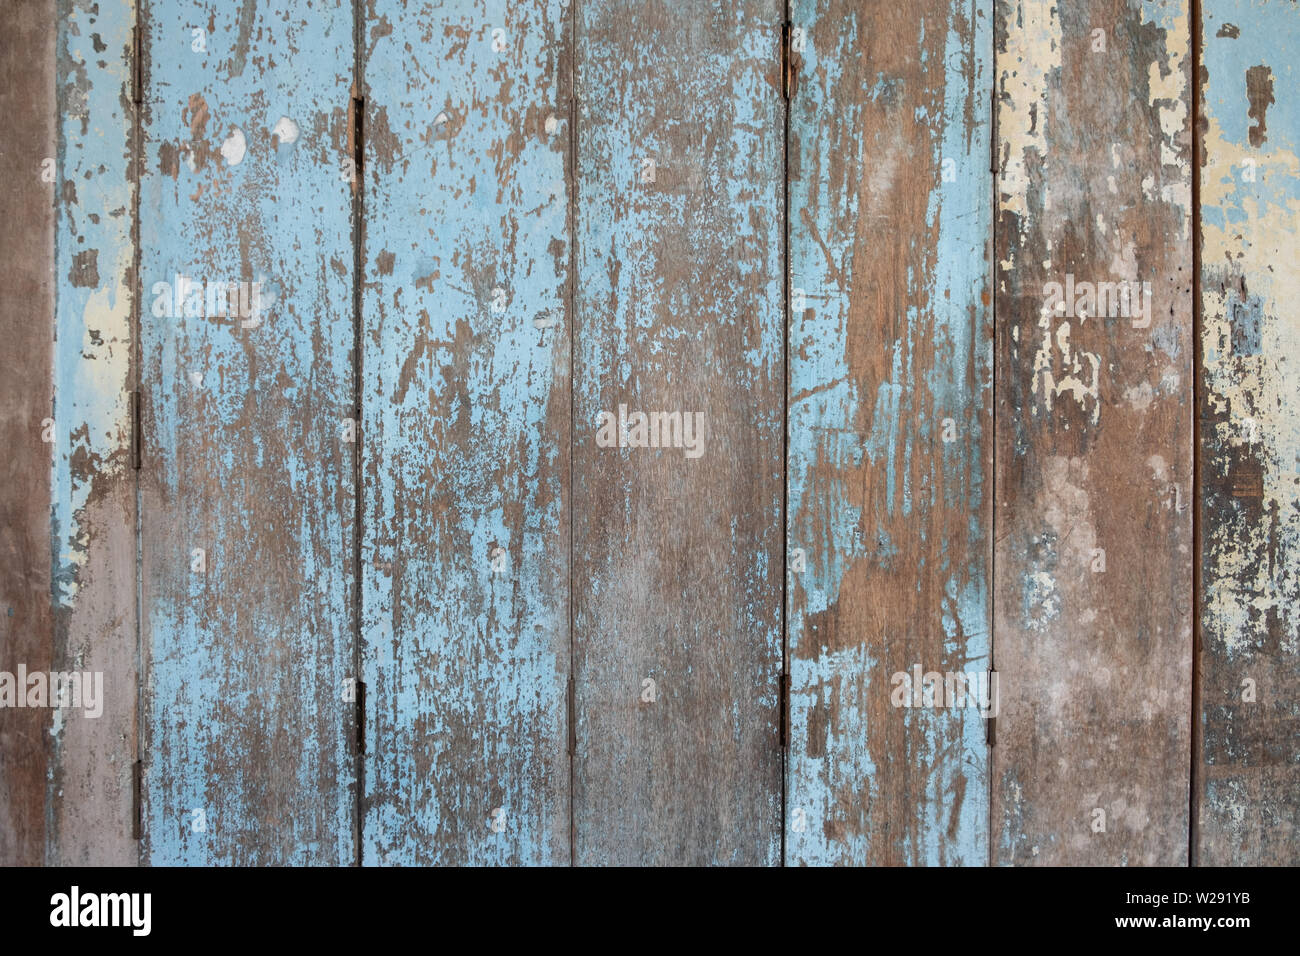 Rustic Old blue wooden background. wood planks. - Stock Image